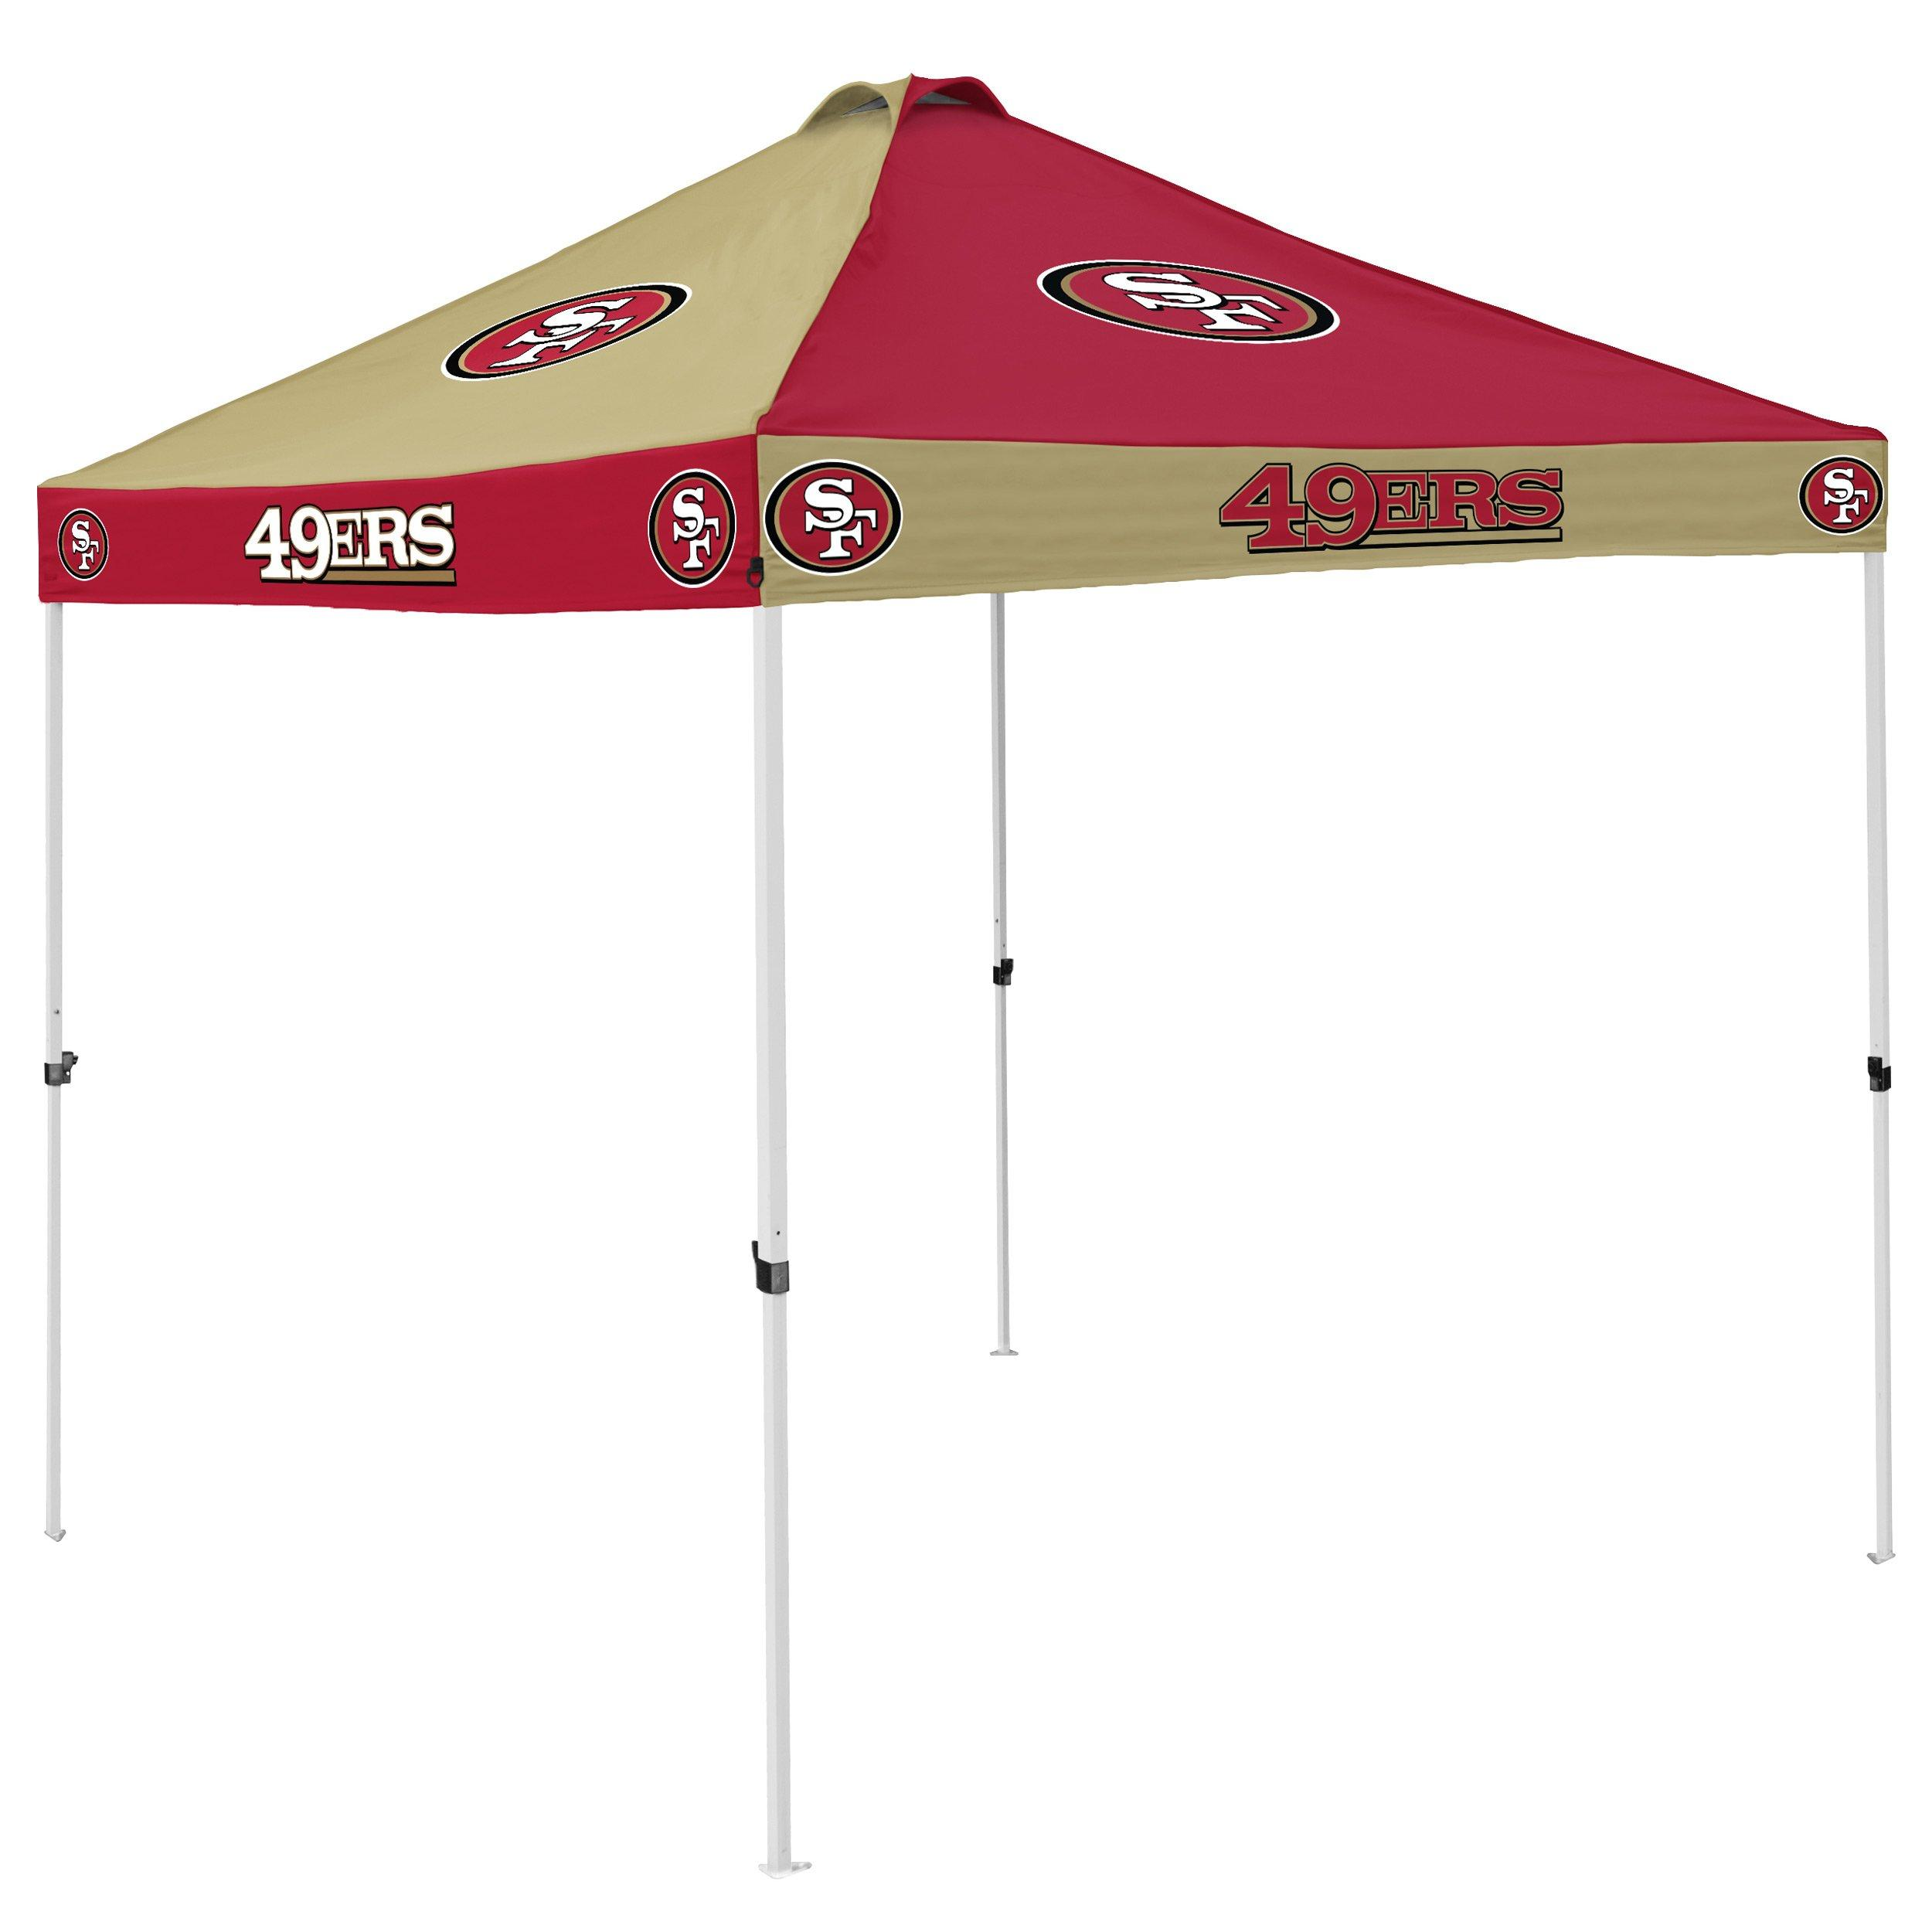 49ers camping chair tree stand swivel logo company san francisco checkerboard canopy tent main container image 1